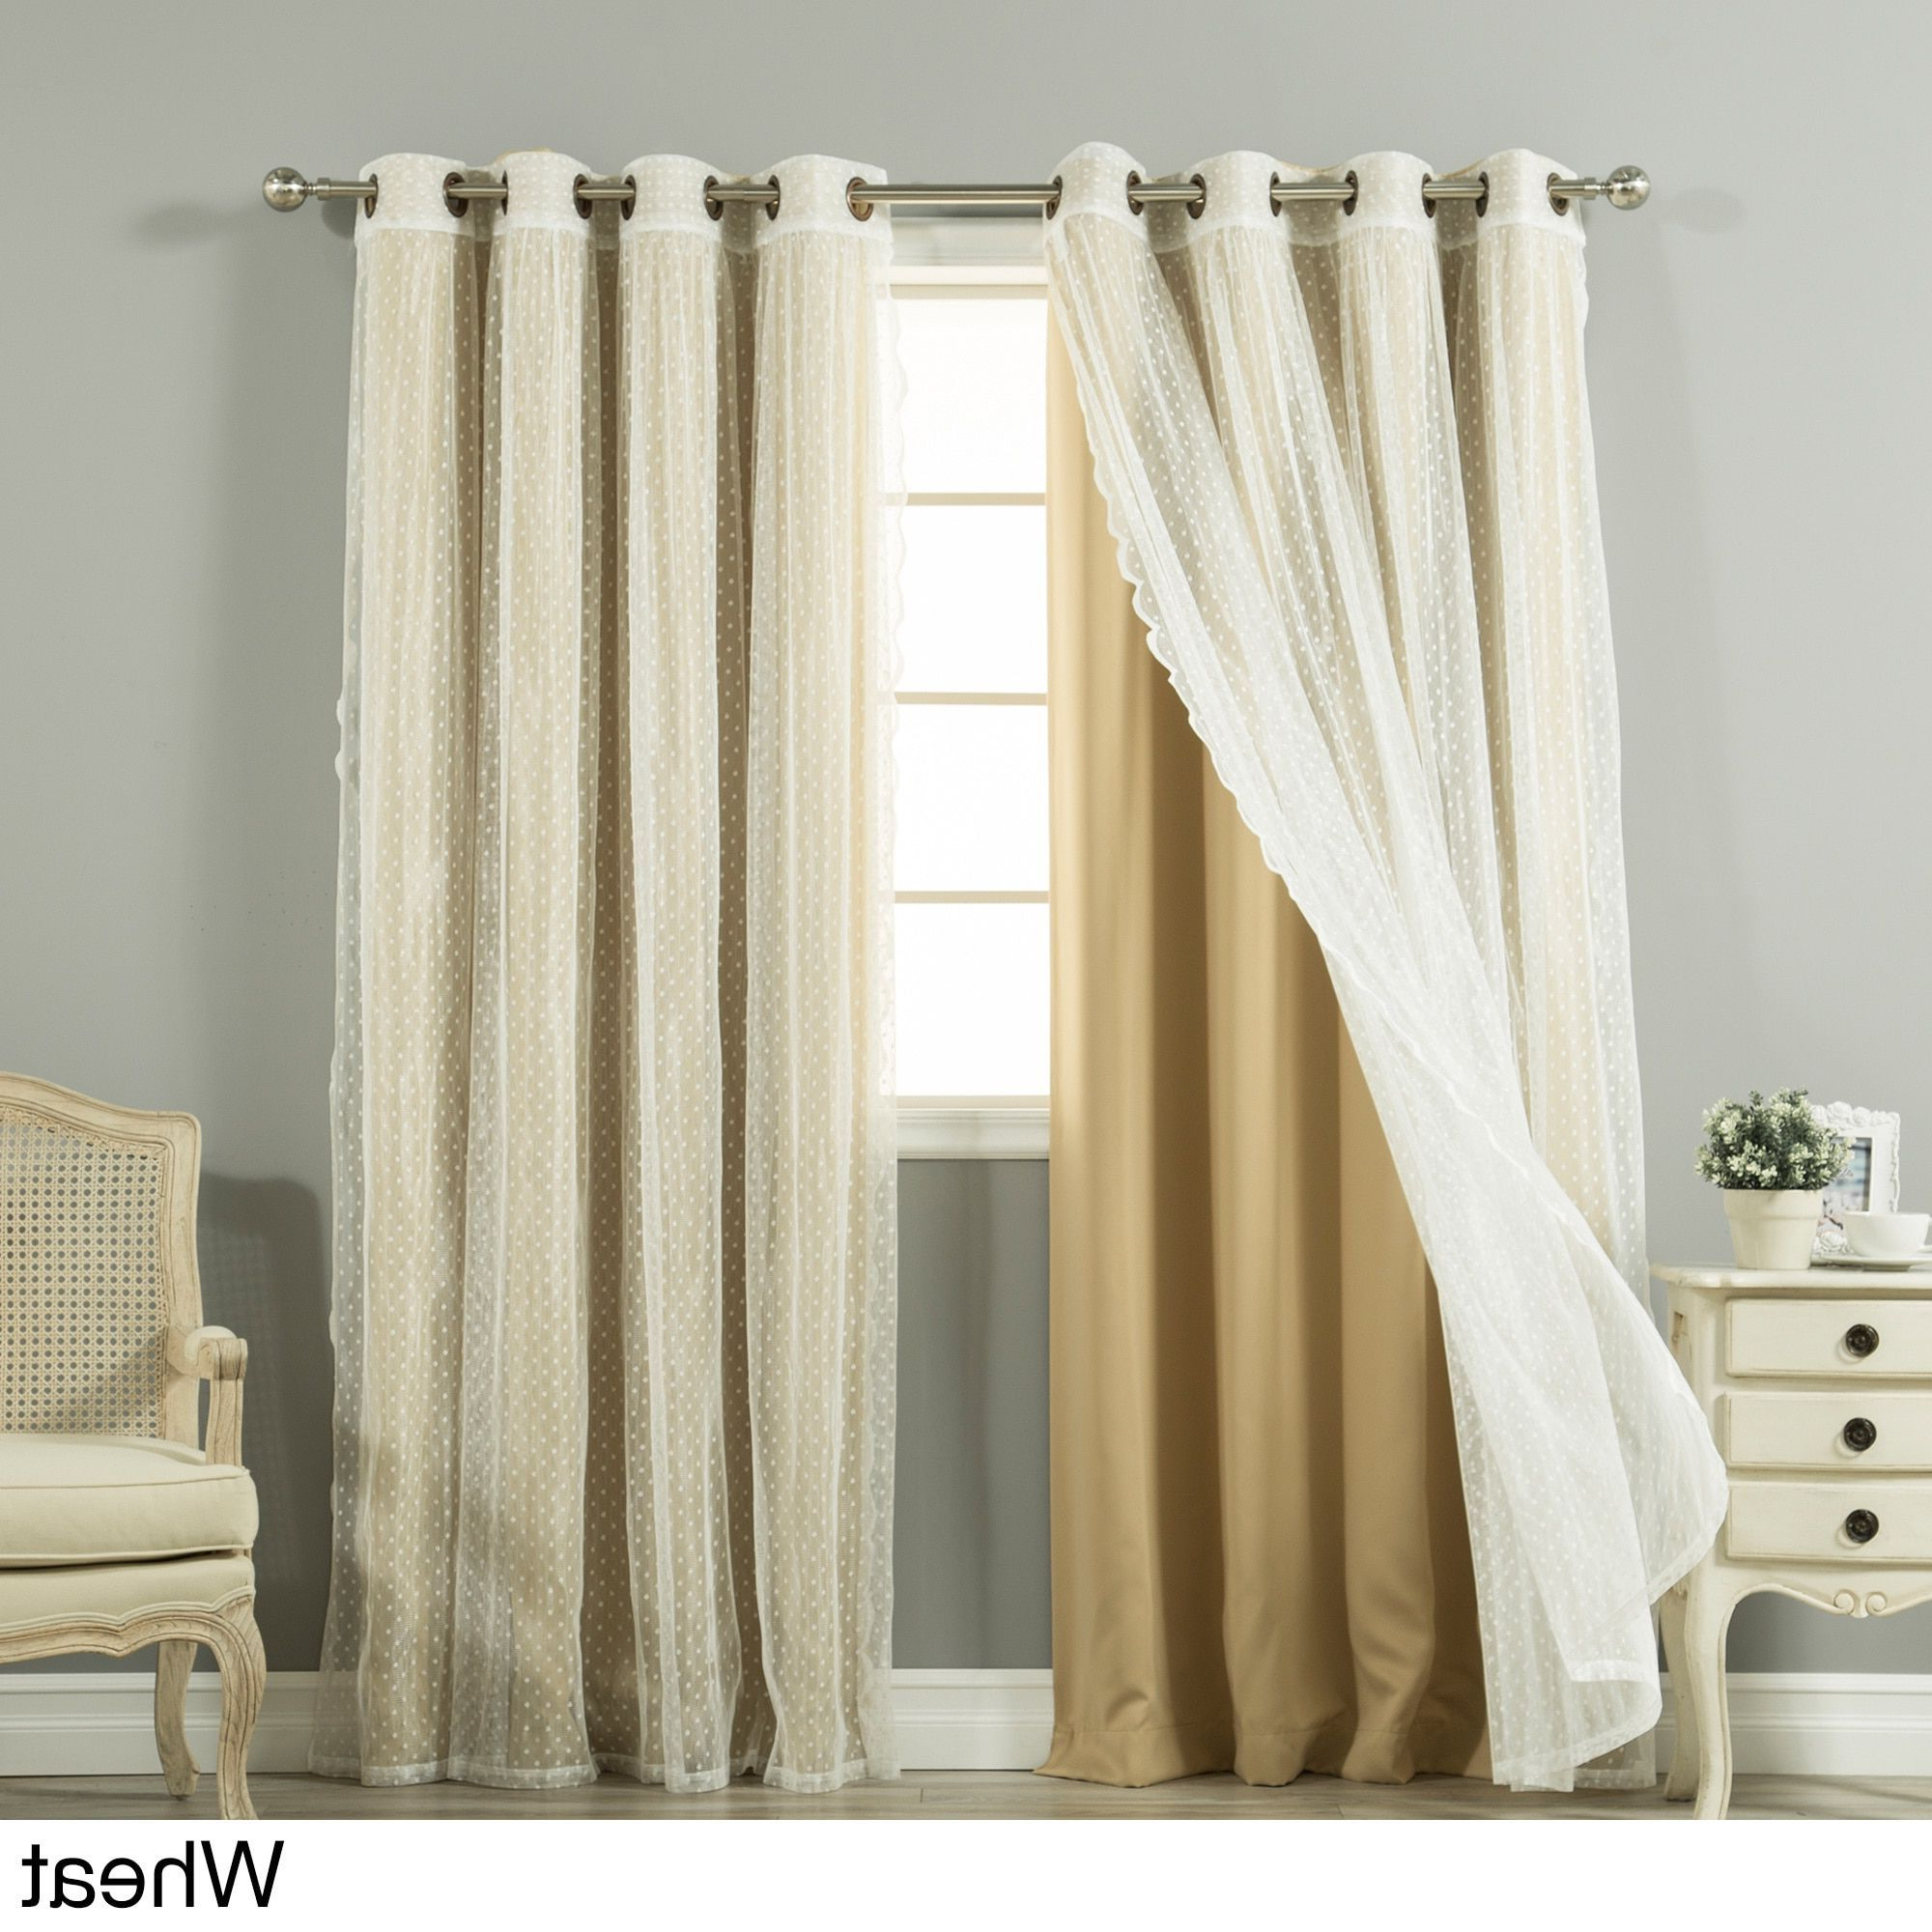 2021 Tulle Sheer With Attached Valance And Blackout 4 Piece Curtain Panel Pairs In Aurora Home Mix And Match Curtains Blackout And Dot Sheer (View 14 of 20)